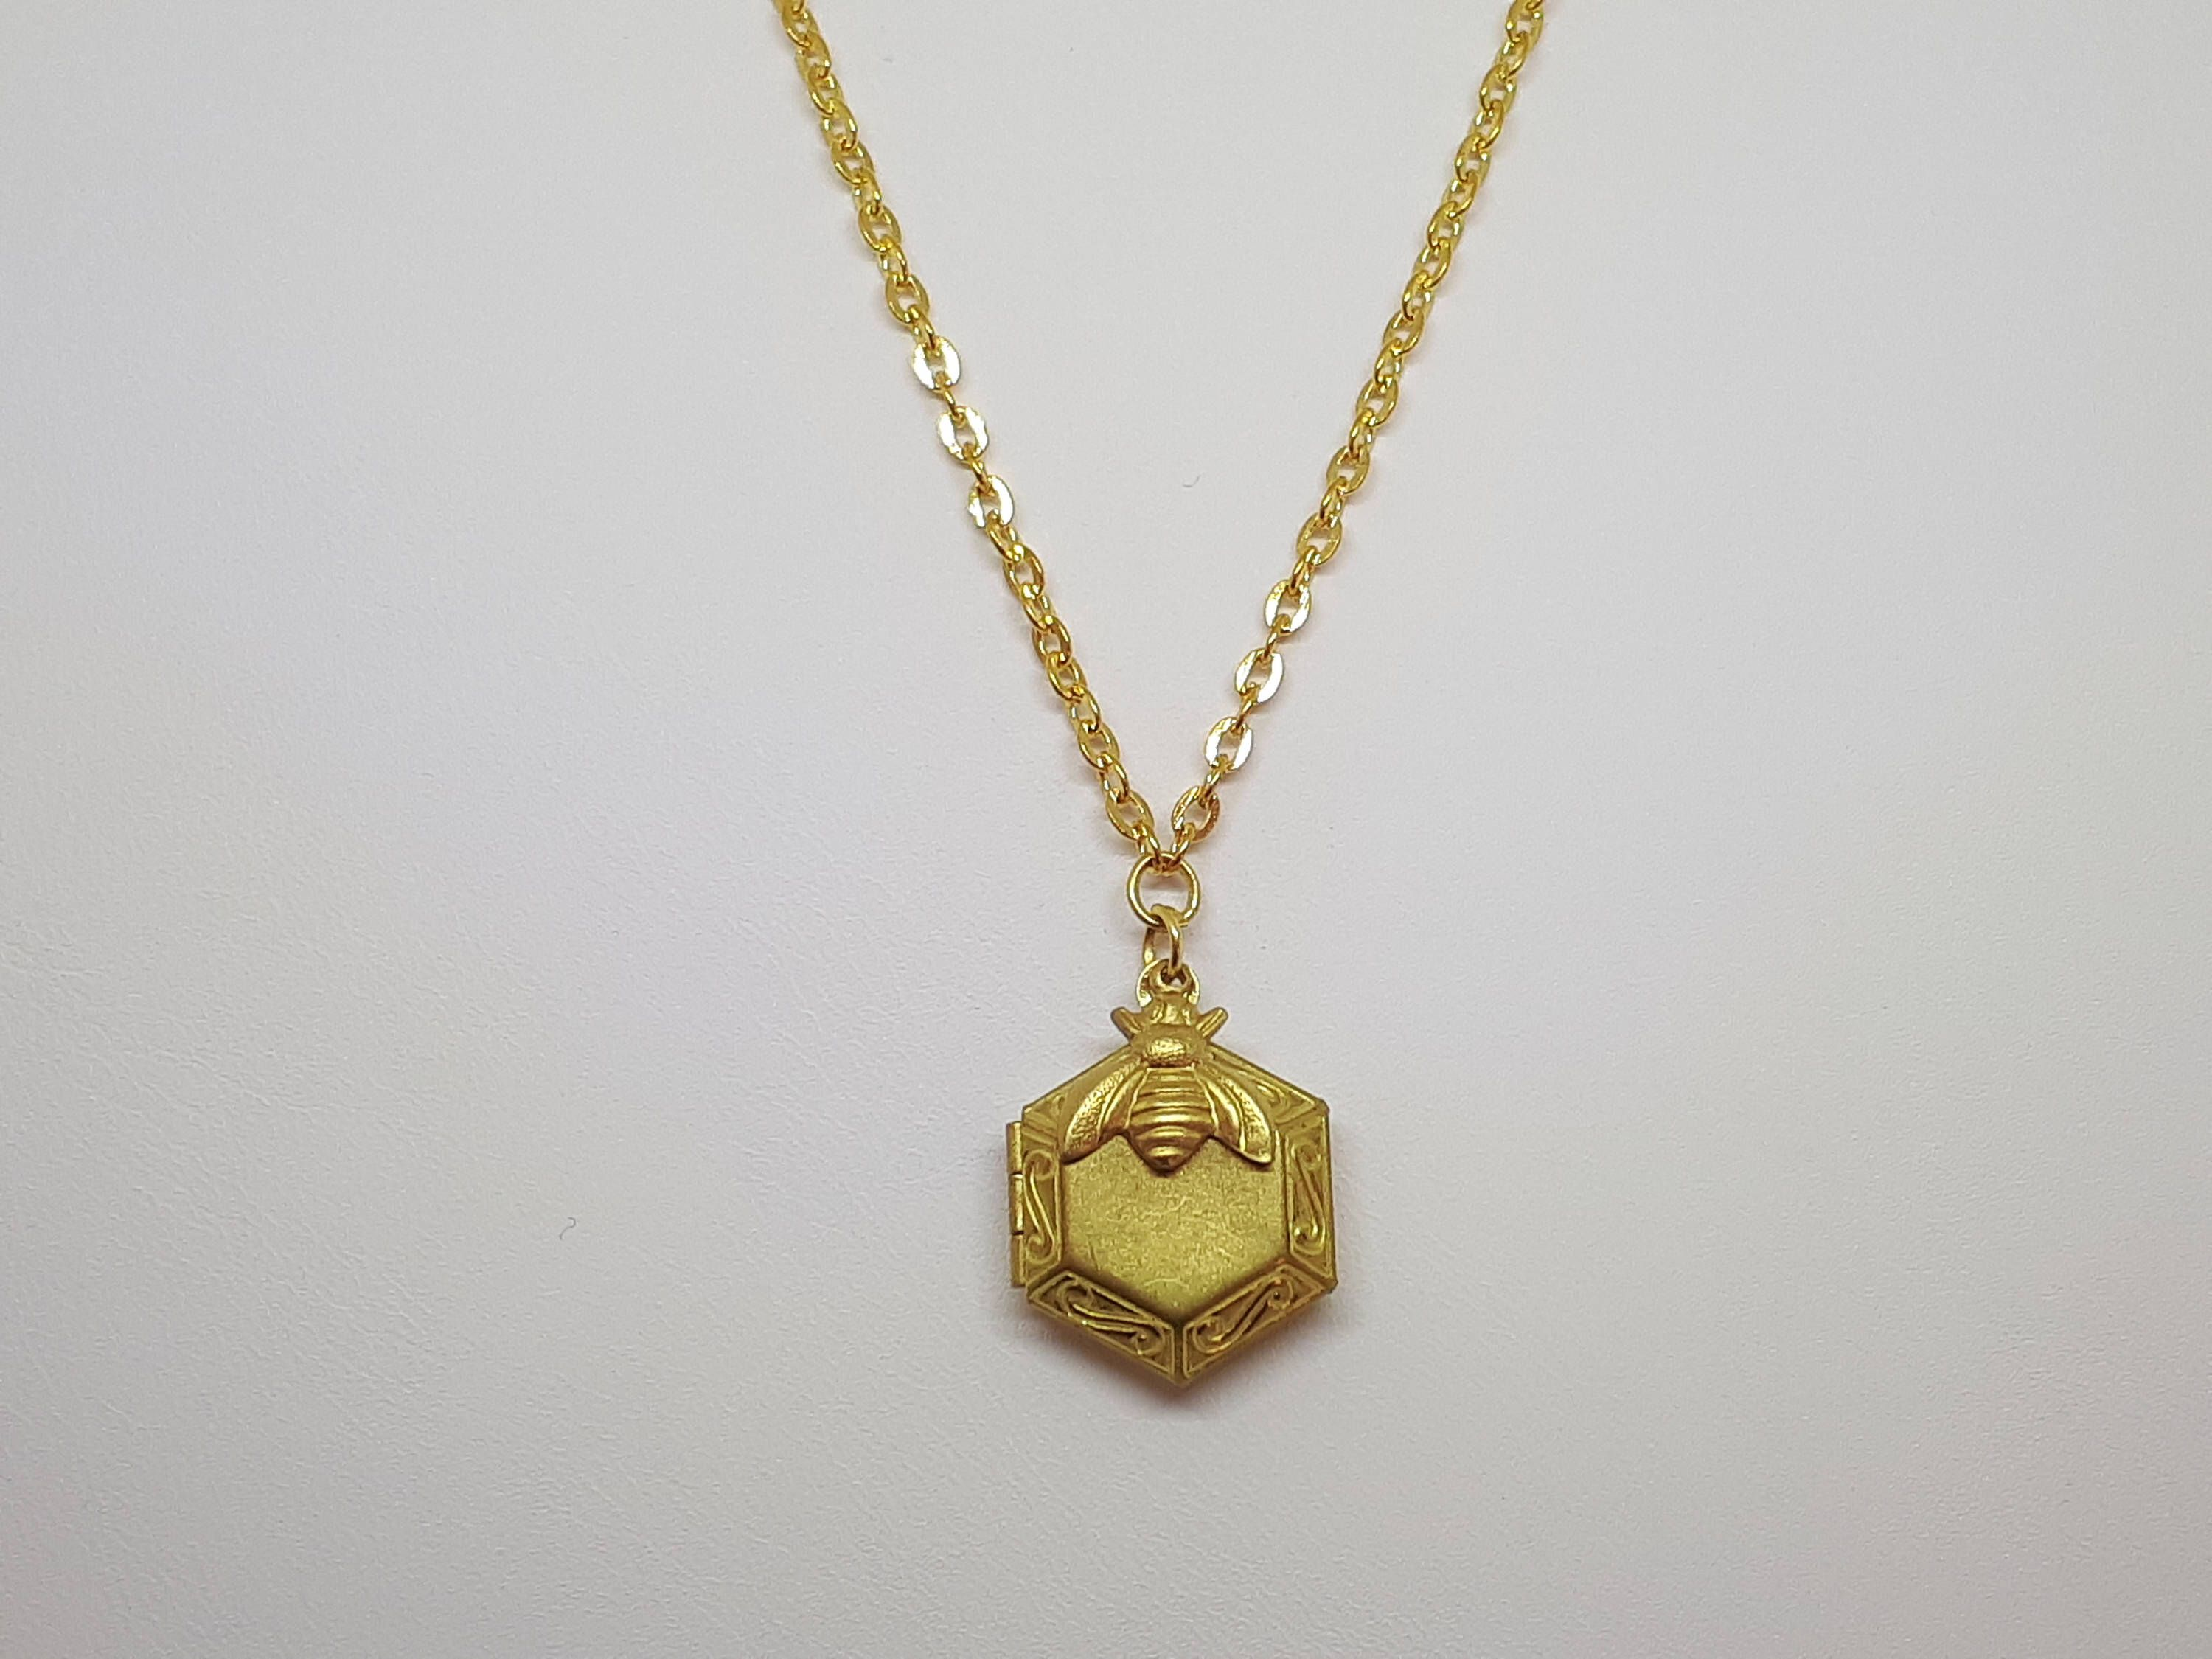 c art deco pendant hexagonal diamond watch onyx by and desktopdefault cartier paris